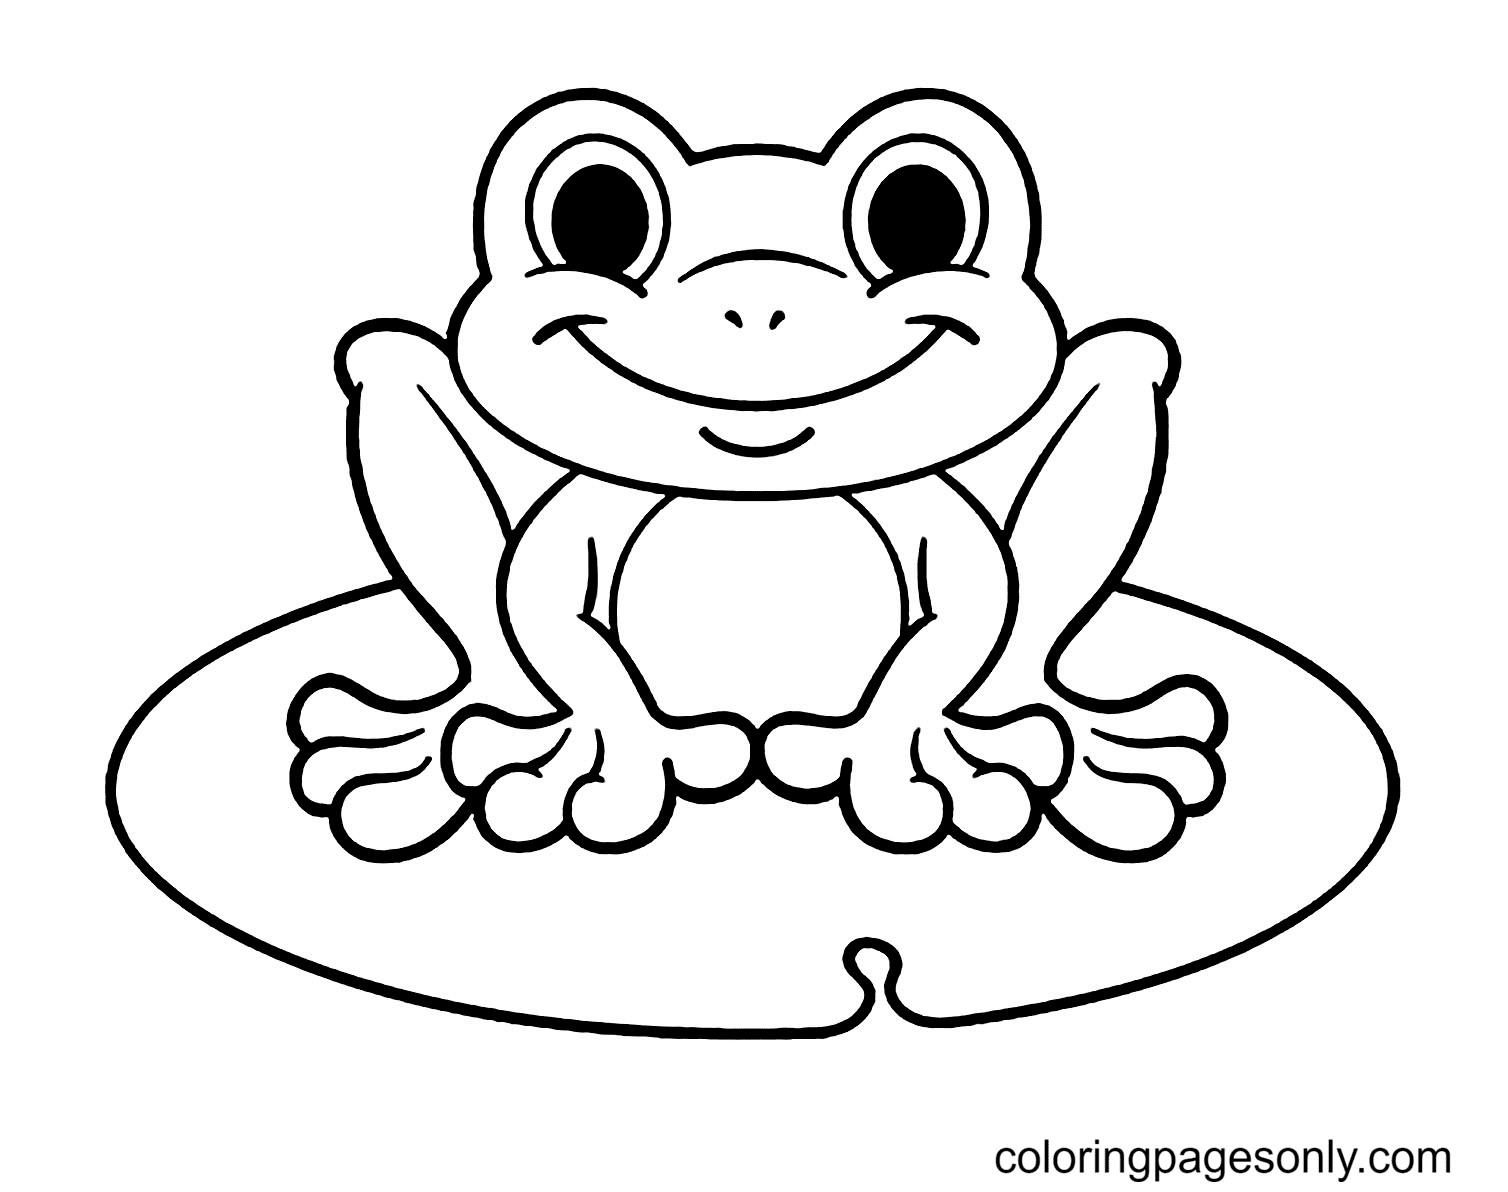 Frogs to Print For Free Coloring Page